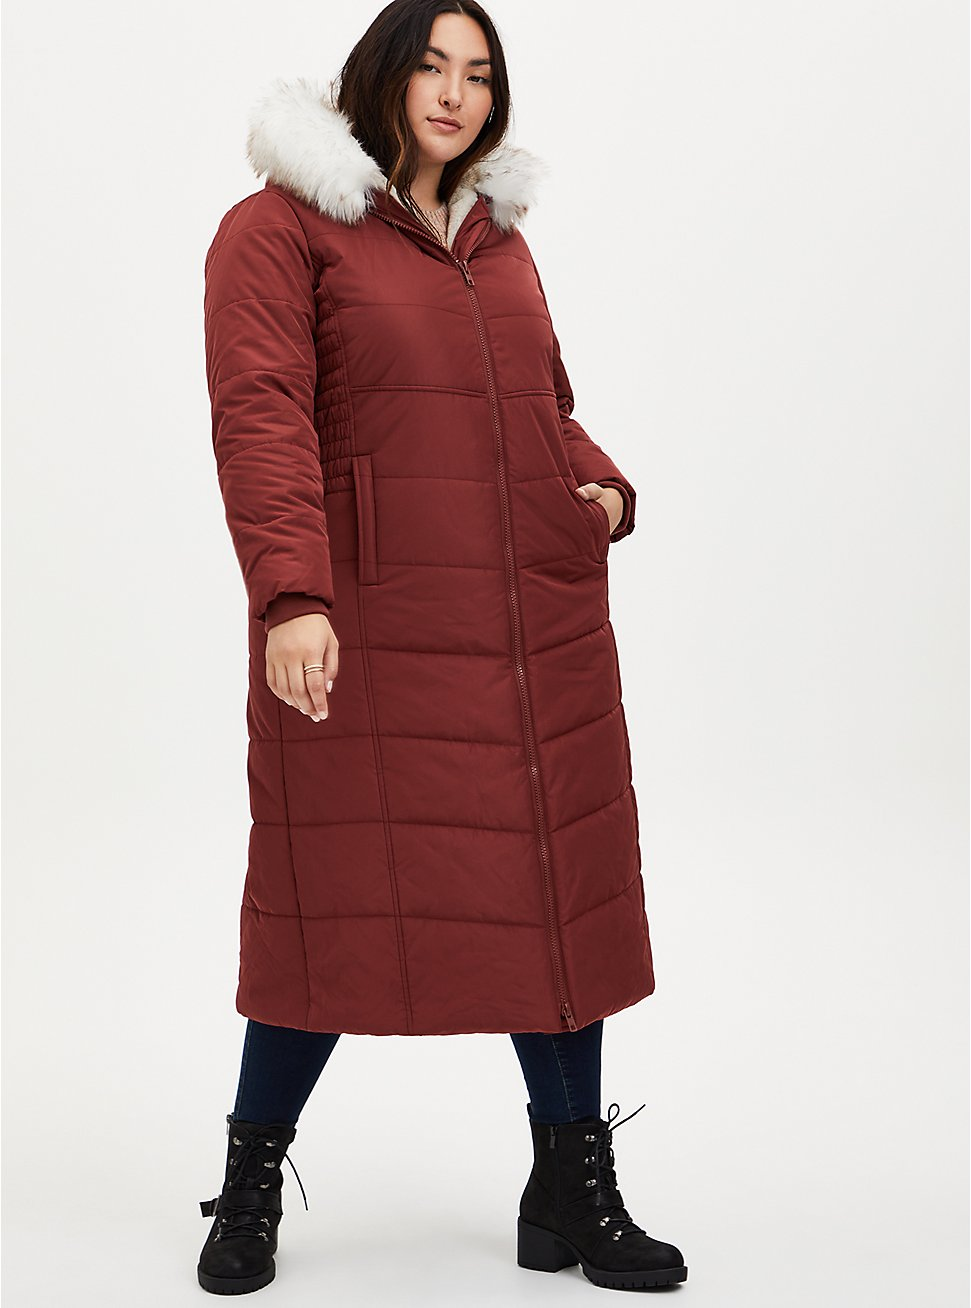 Brick Red Twill Fit & Flare Maxi Puffer Coat , MADDER BROWN, hi-res